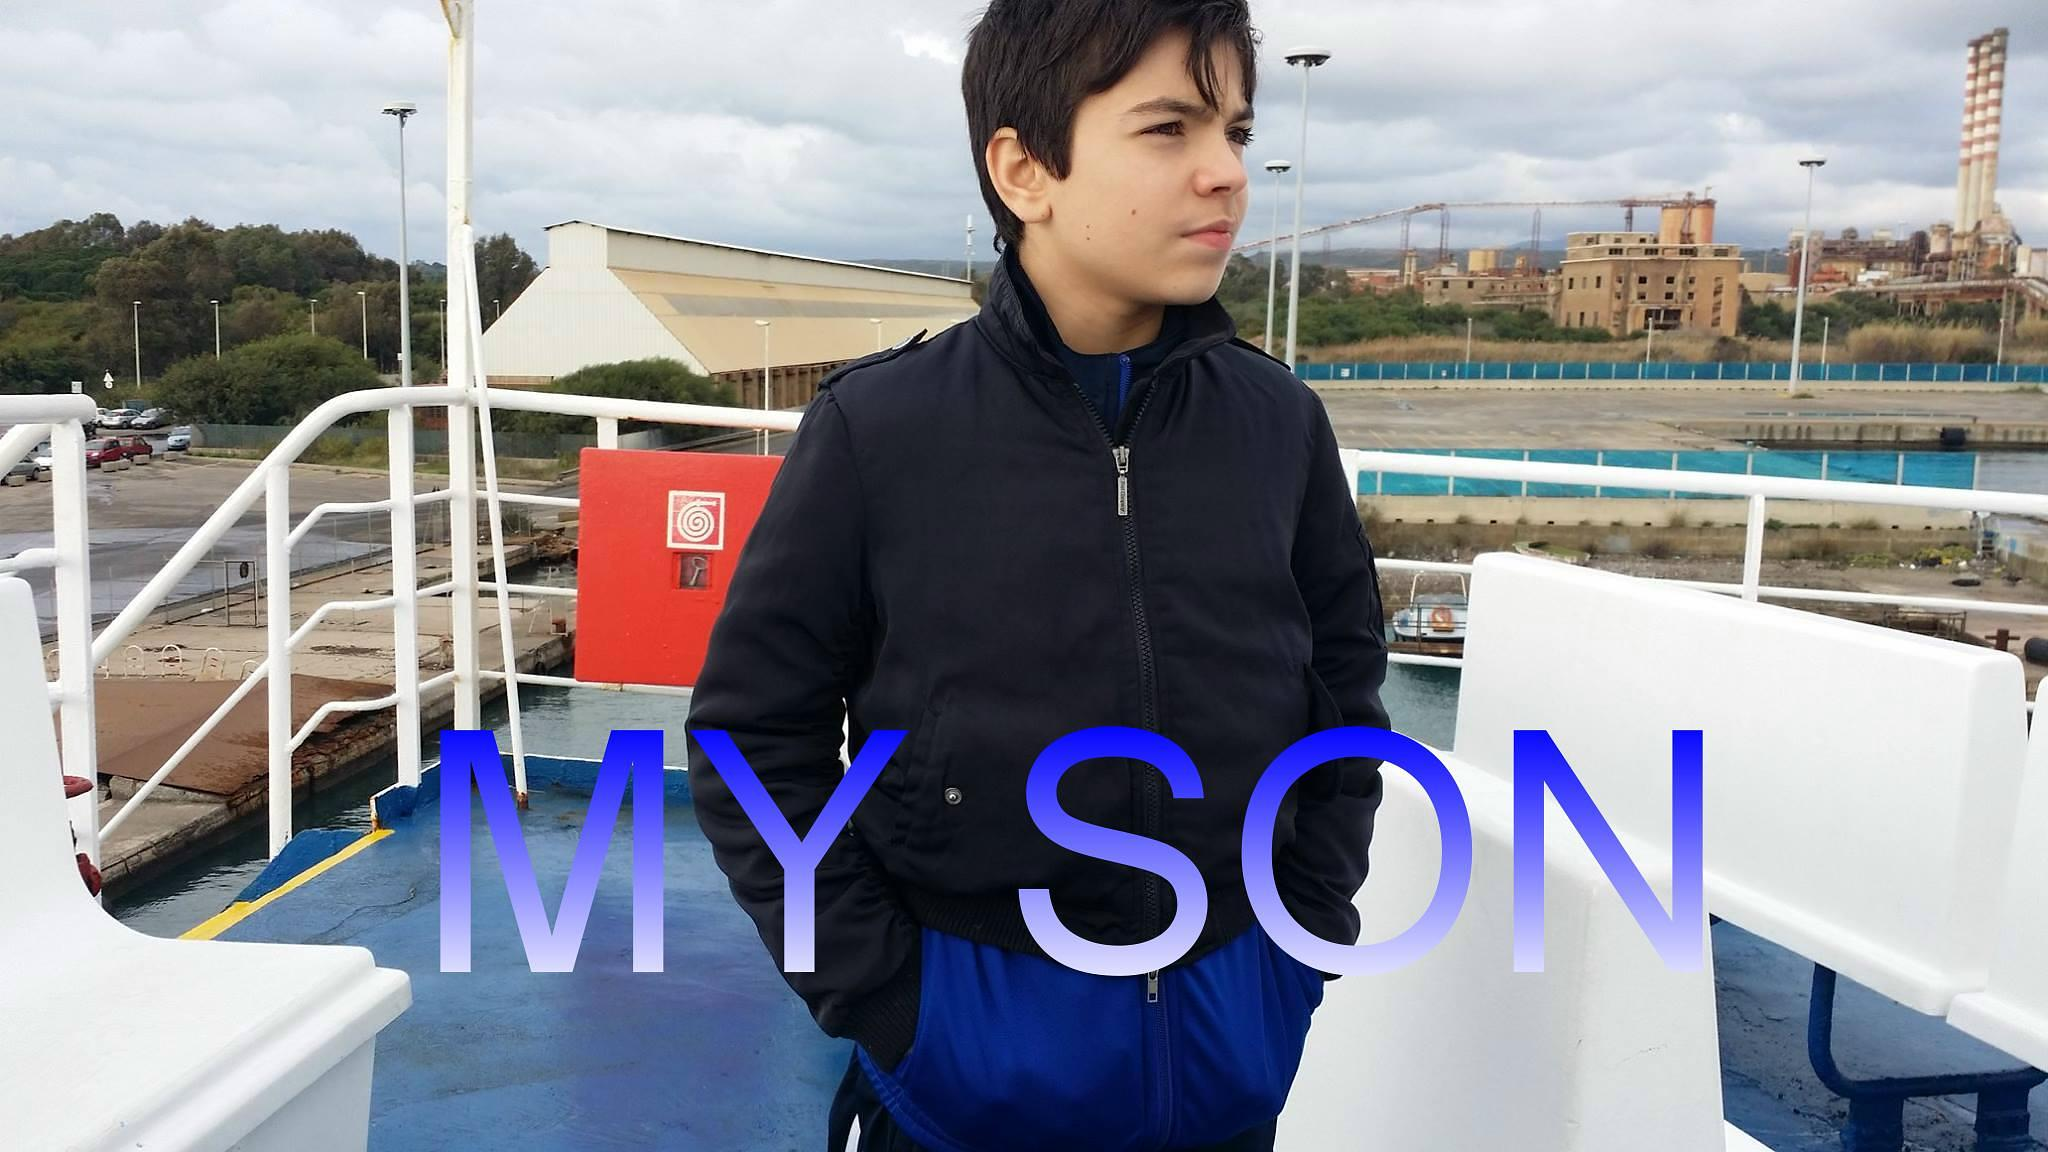 MY SON by carlomuscas